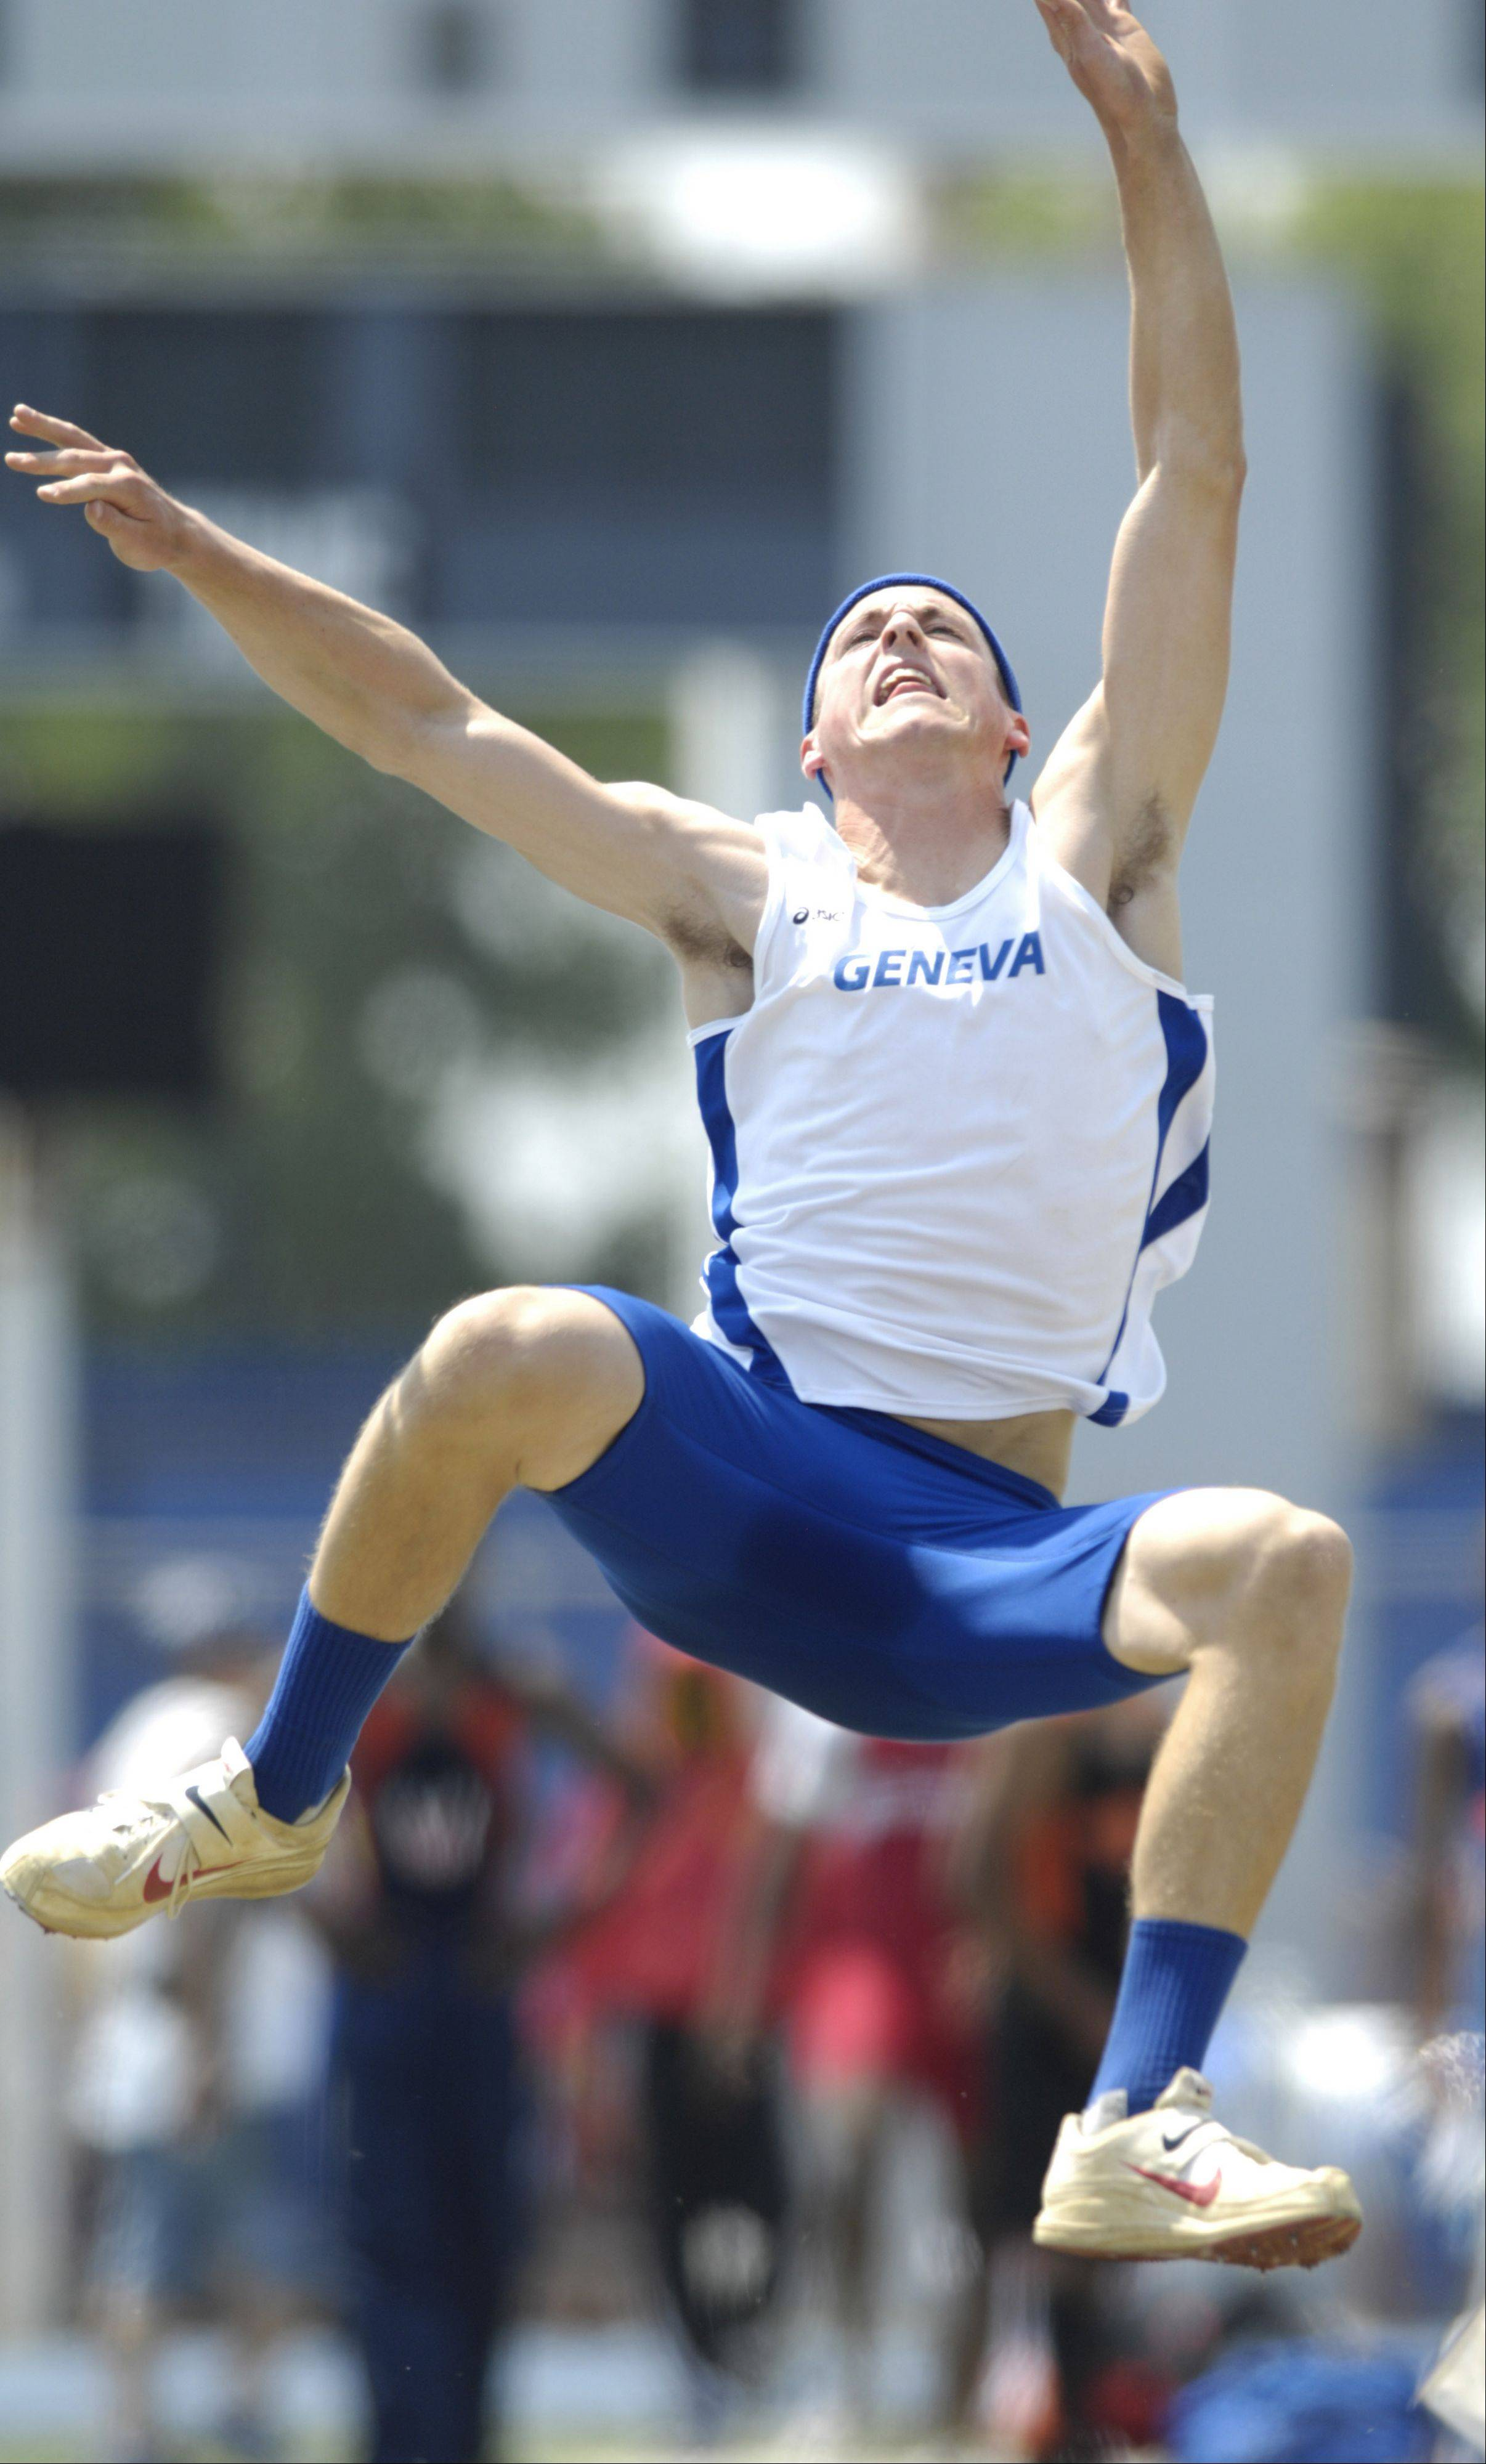 Geneva's Ben Rogers competes in the Class 3A long jump Saturday.